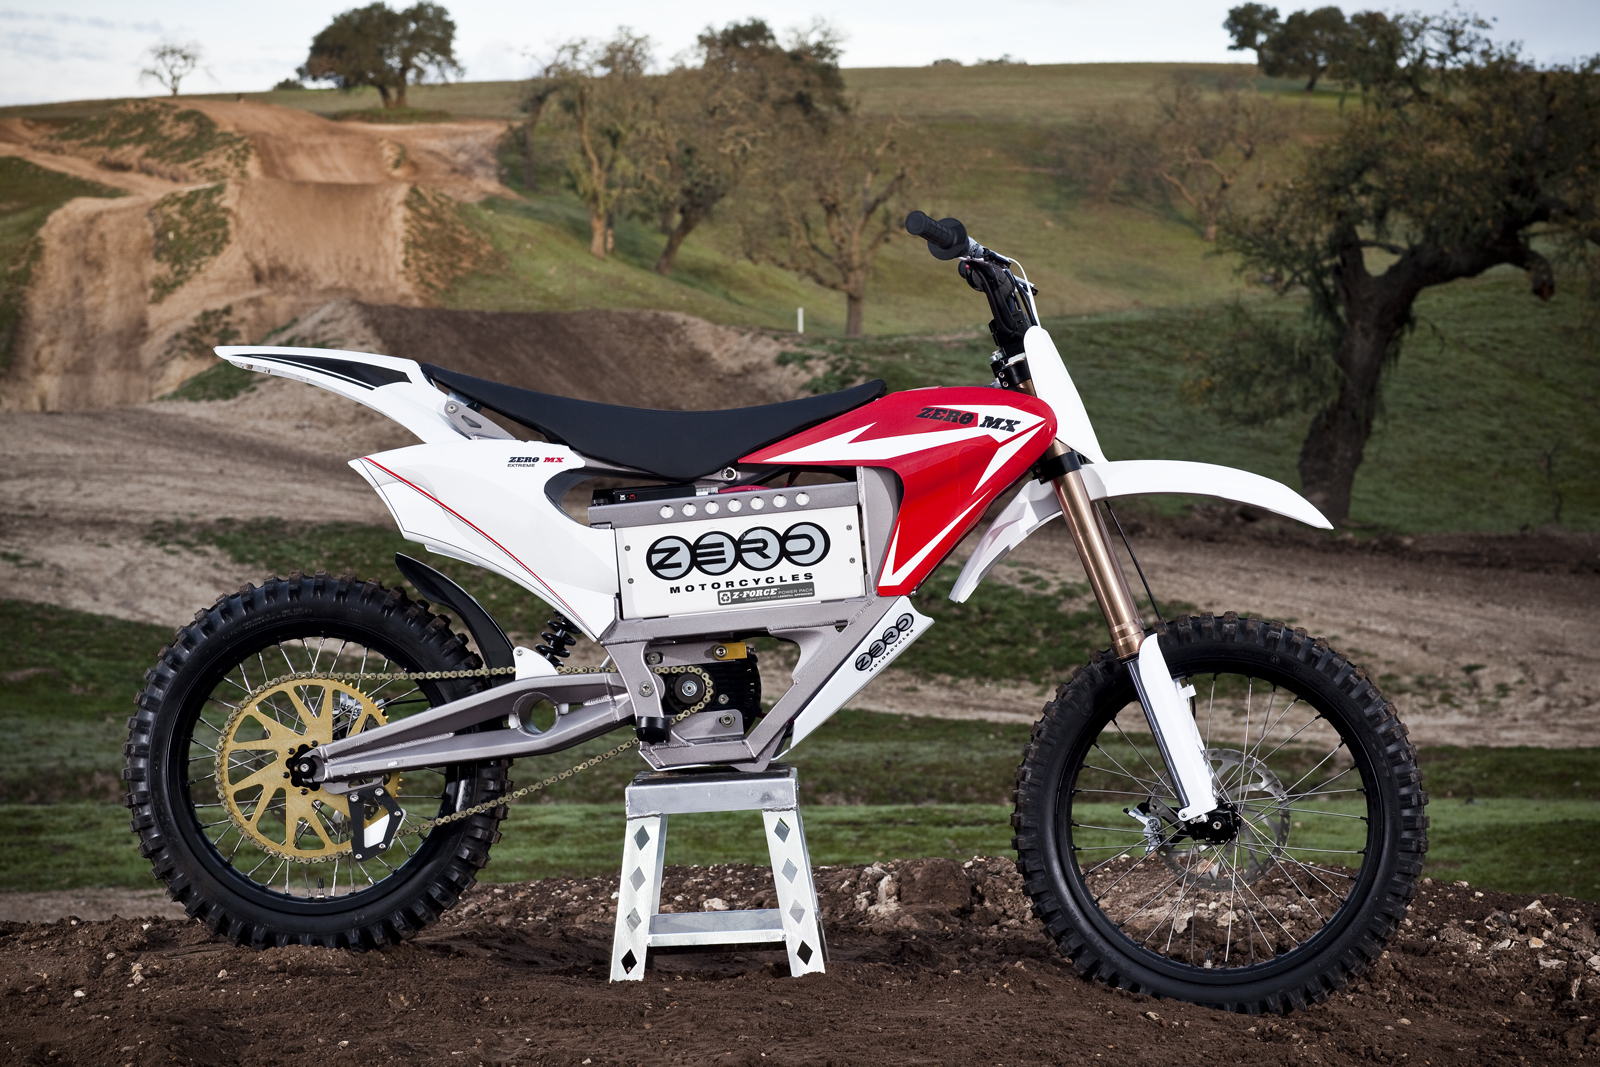 '.2010 Zero MX Electric Motorcycle: Zaca Station - Product Shot at Track.'